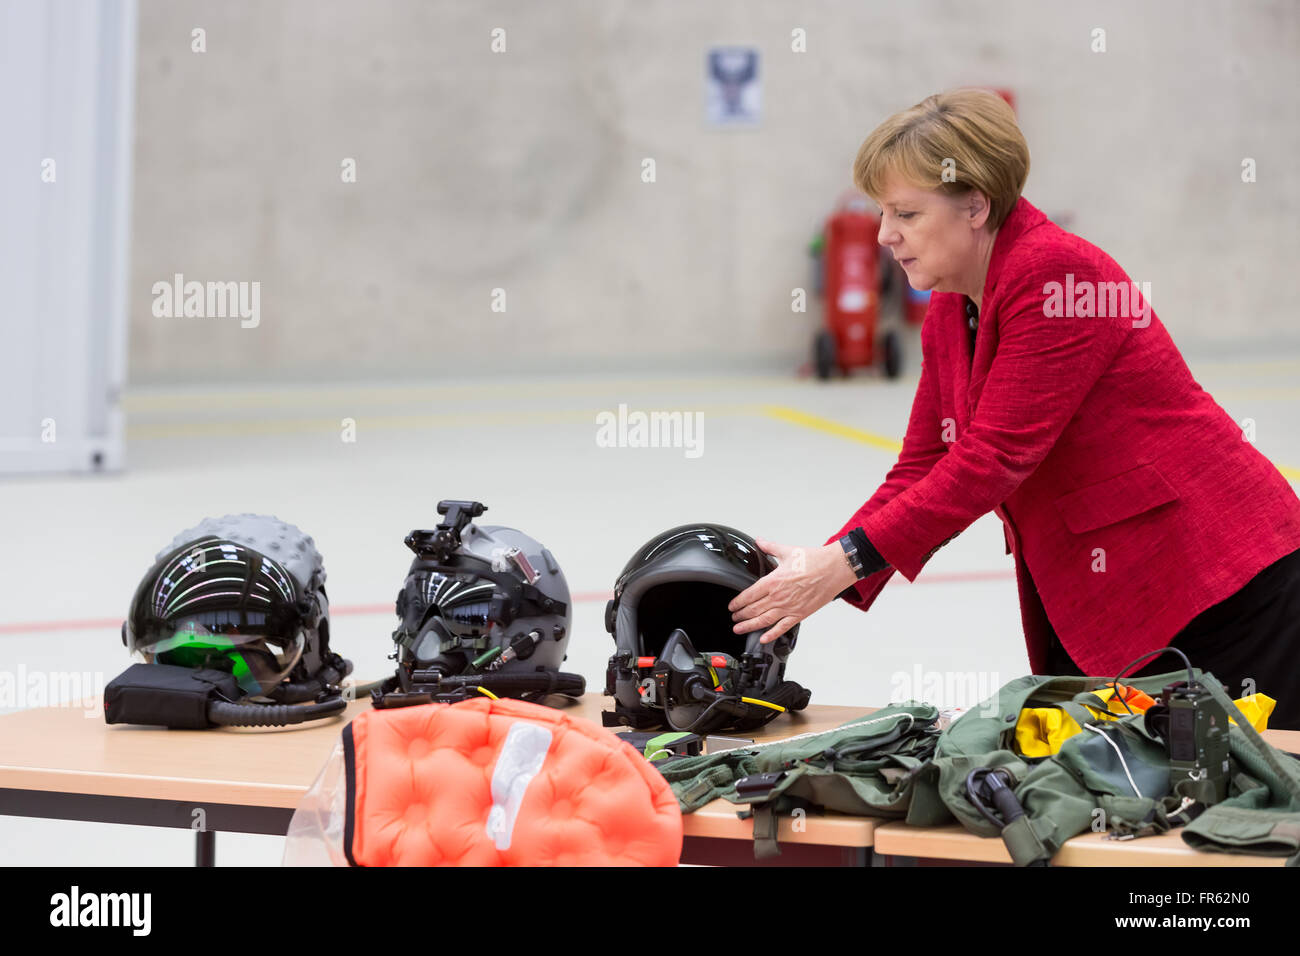 Noervenich, Germany. 21st March, 2016. Chancellor Angela Merkel visits Tactical Air Force Squadron 31 'Boelcke' - Stock Image